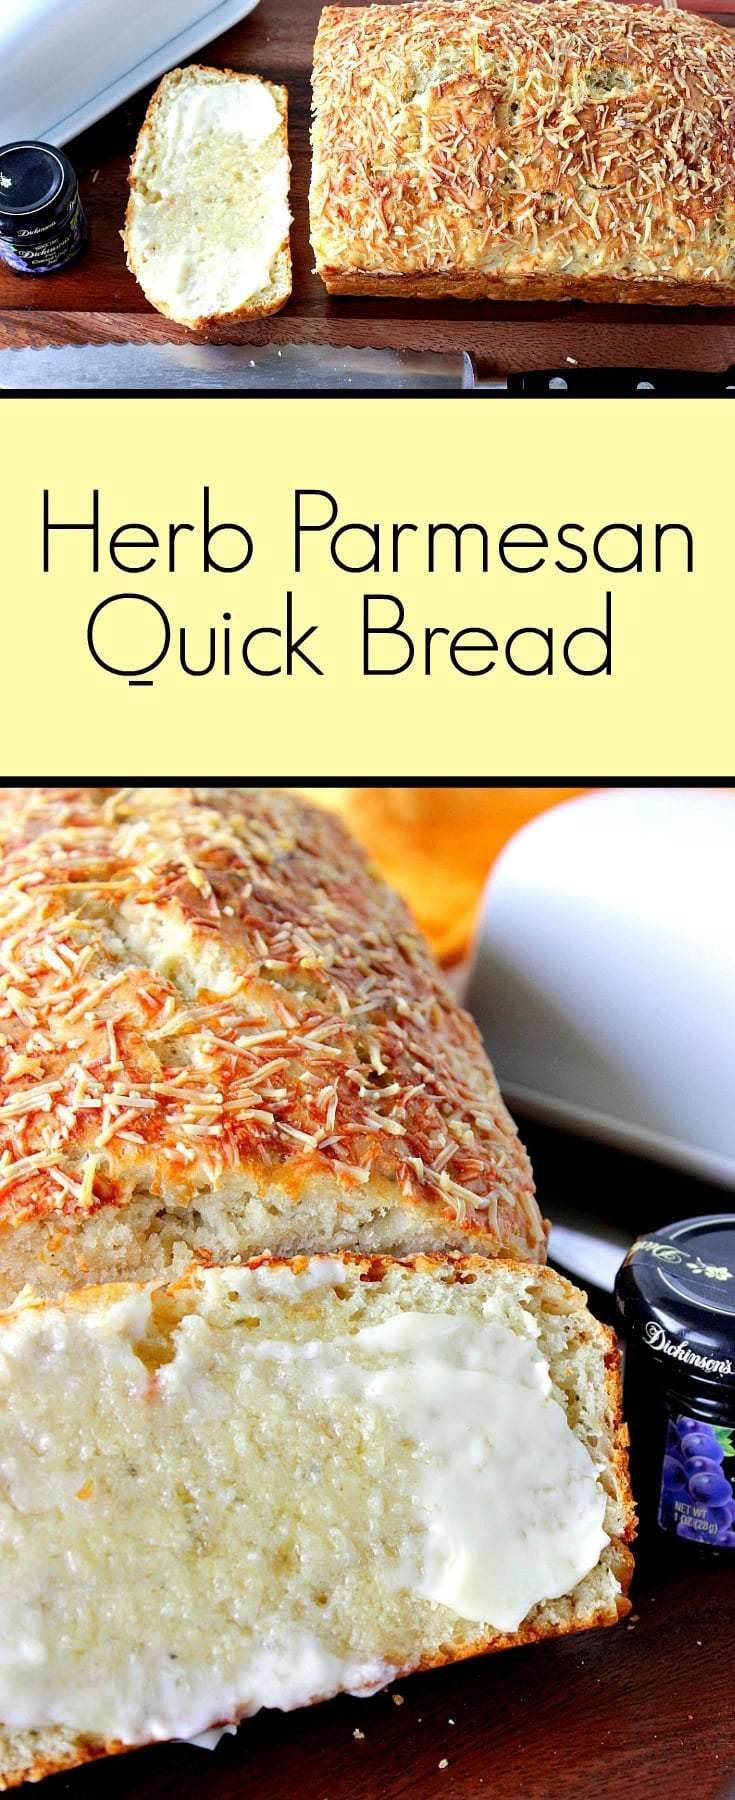 Italian Herb Parmesan Quick Bread comes together in a snap with only one bowl, one spoon, and no kneading required. Make some today! - Kudos Kitchen by Renee